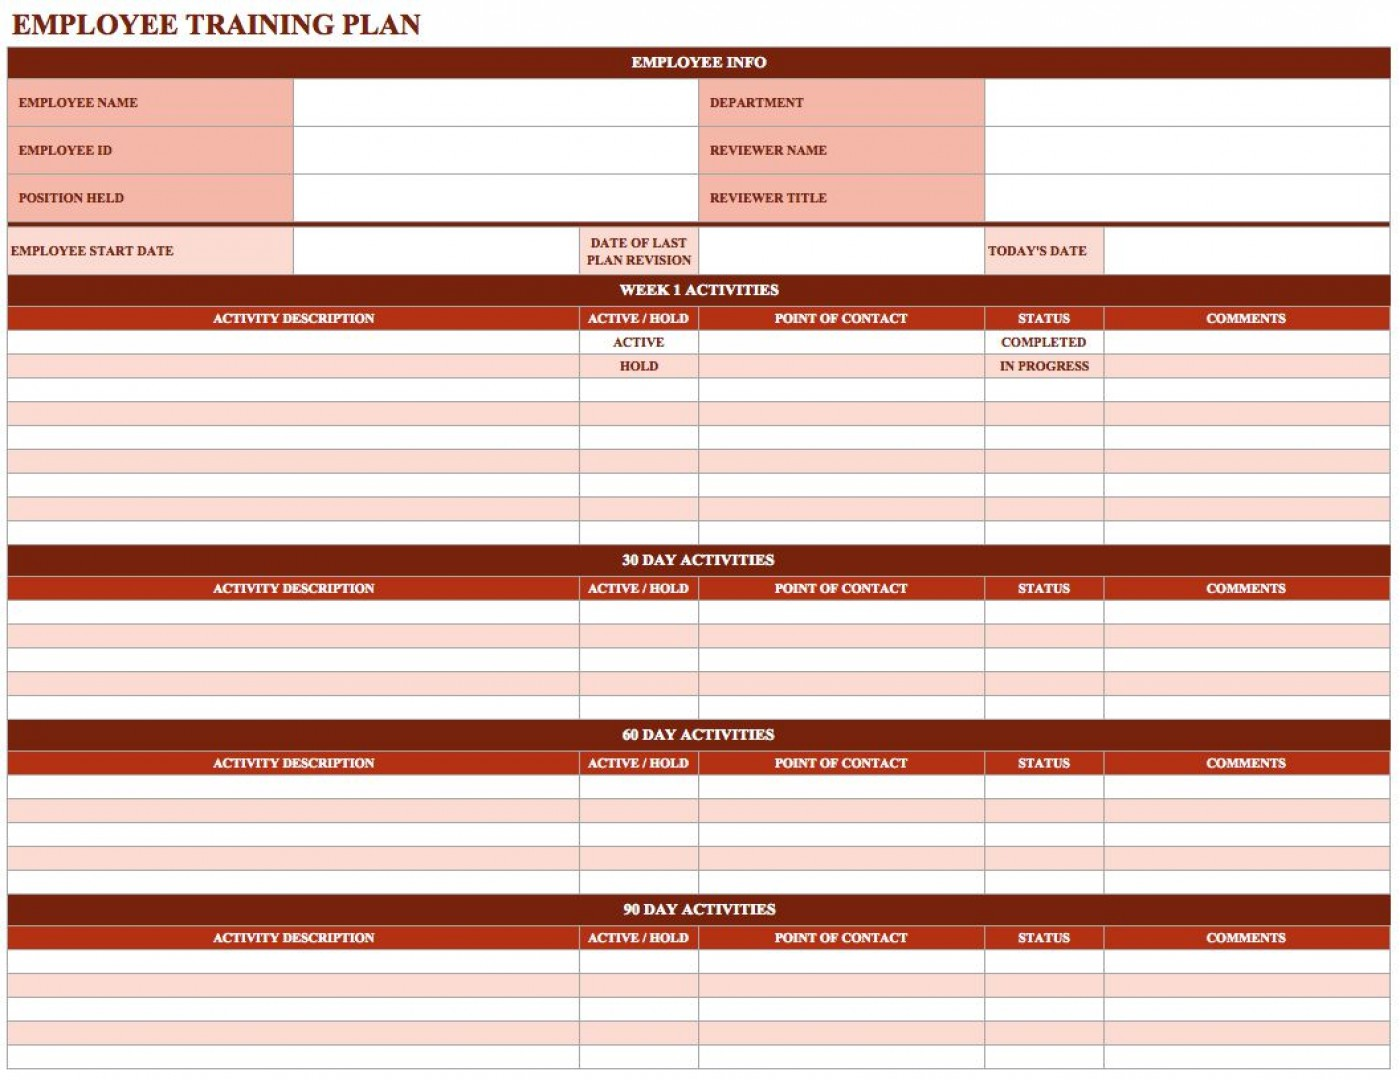 001 Fascinating Employee Training Plan Template Excel Picture  Free Download New Schedule1400